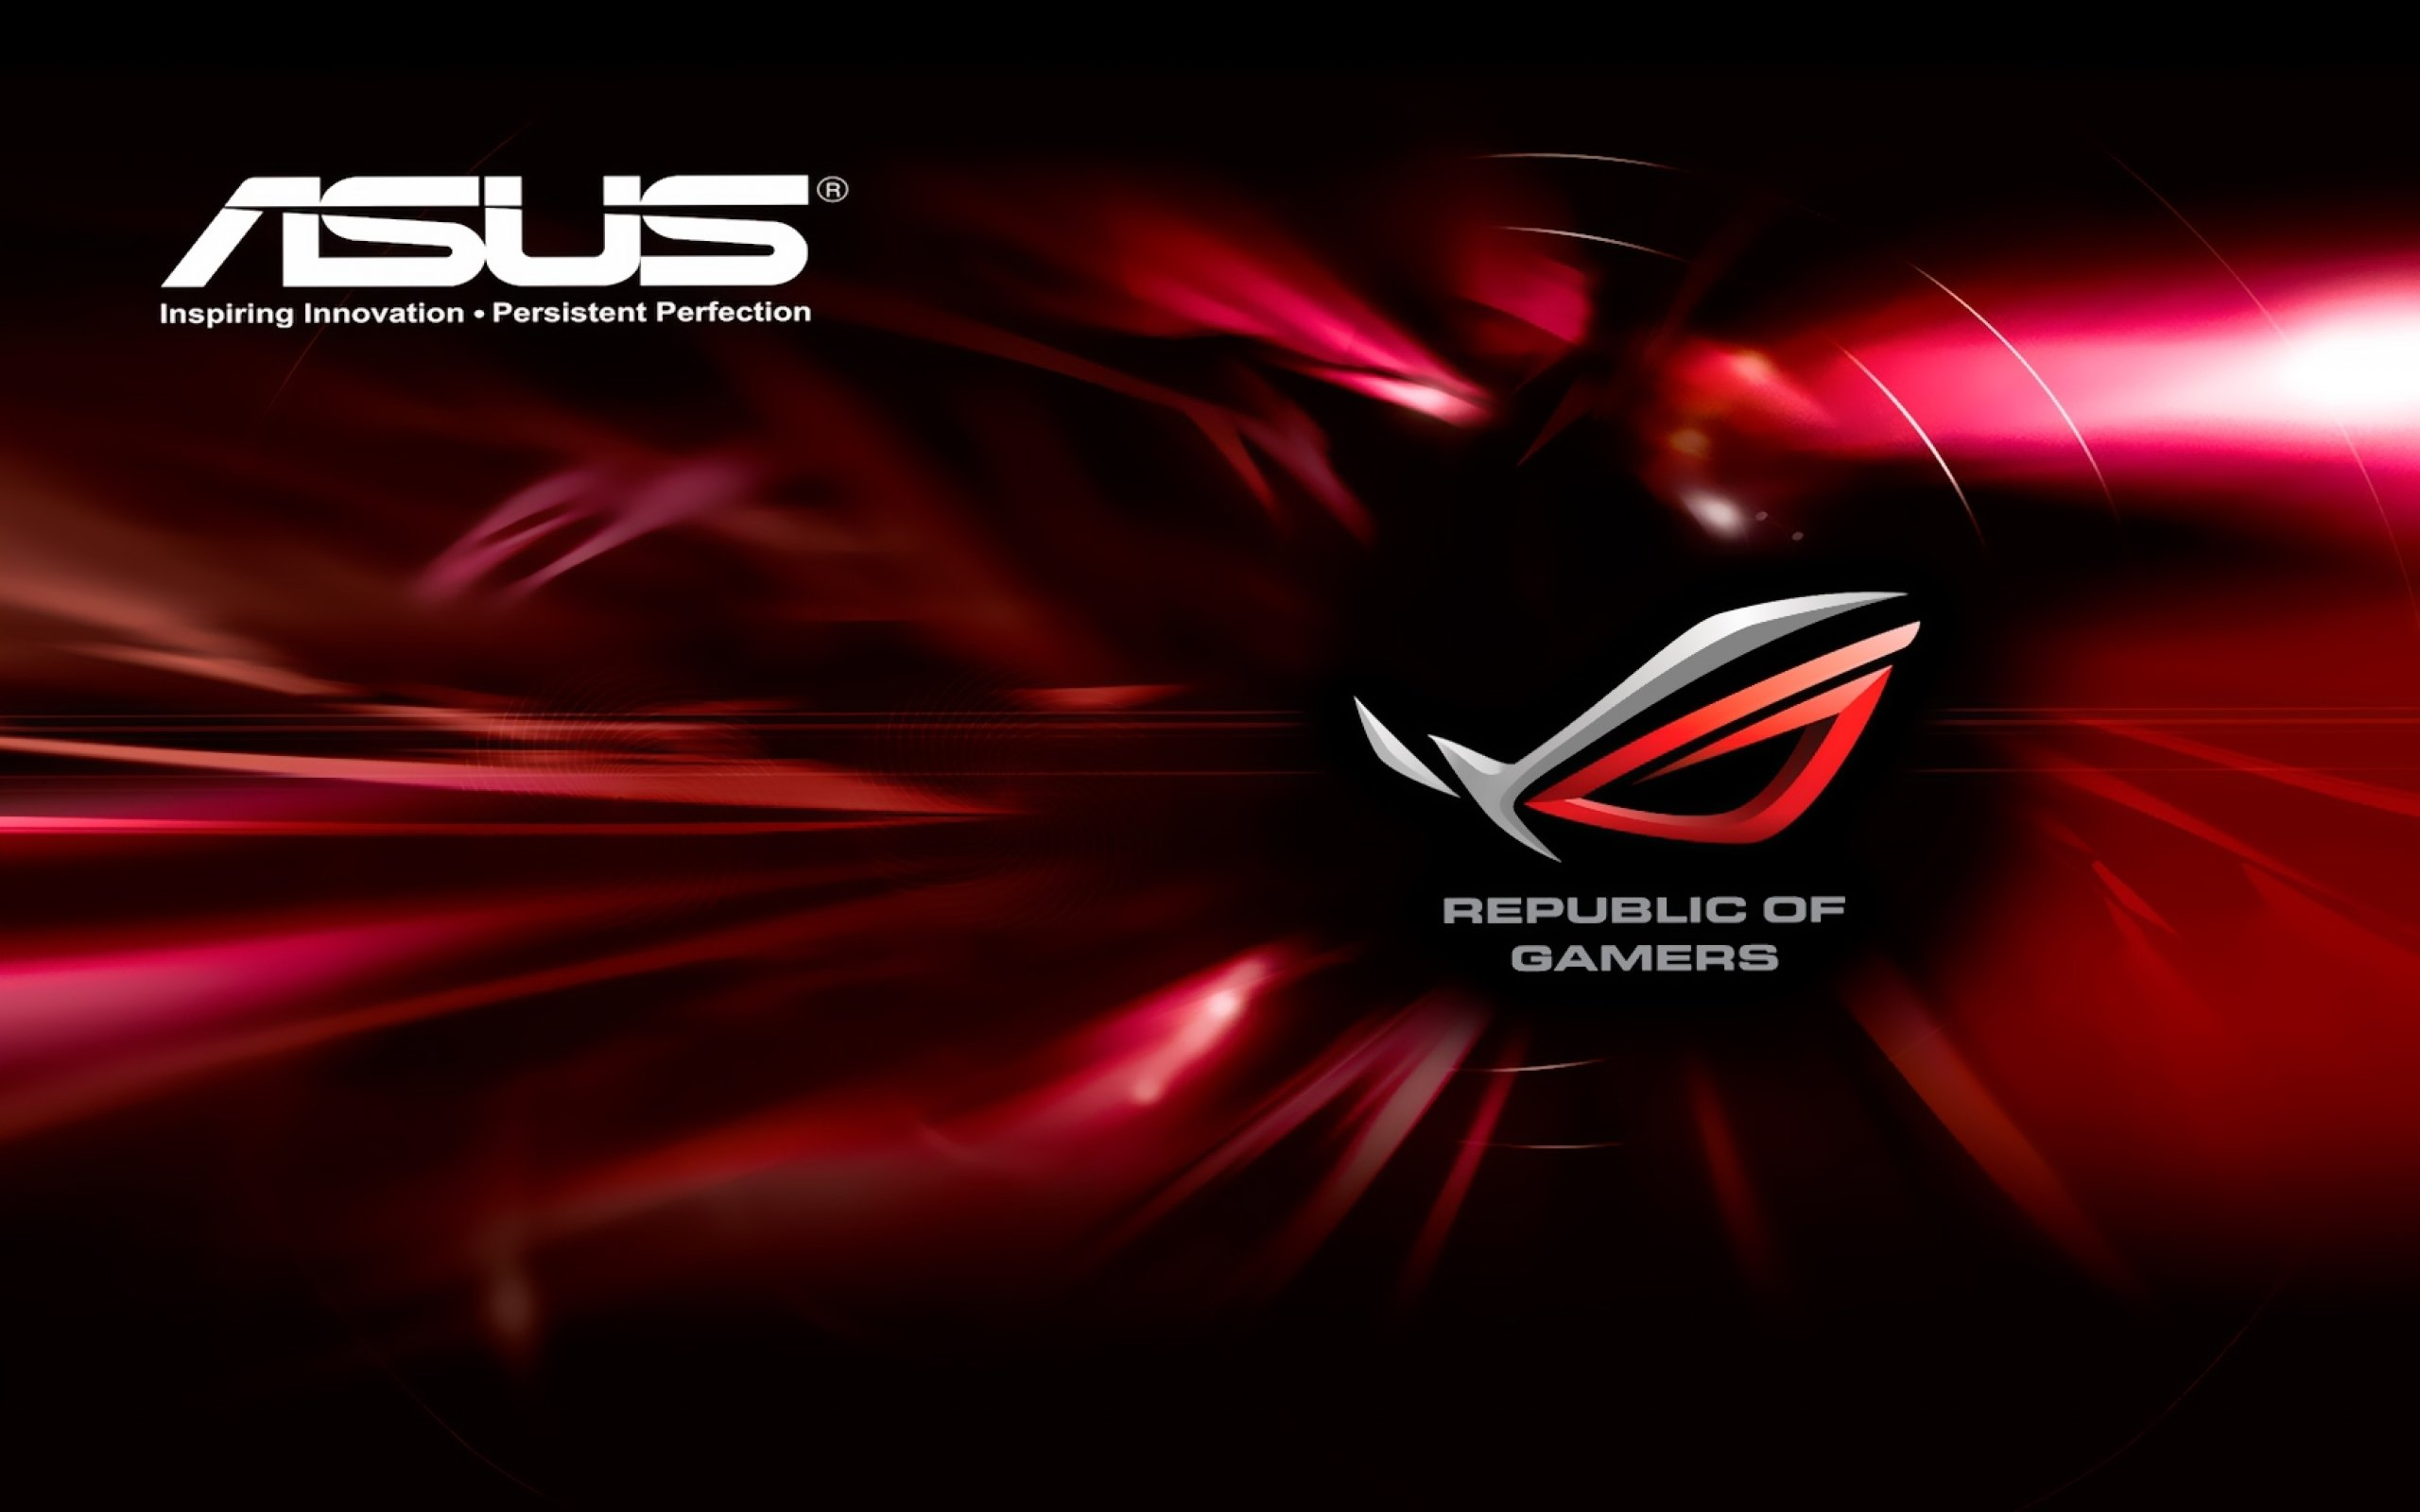 asus red tecnology wallpaper - photo #11